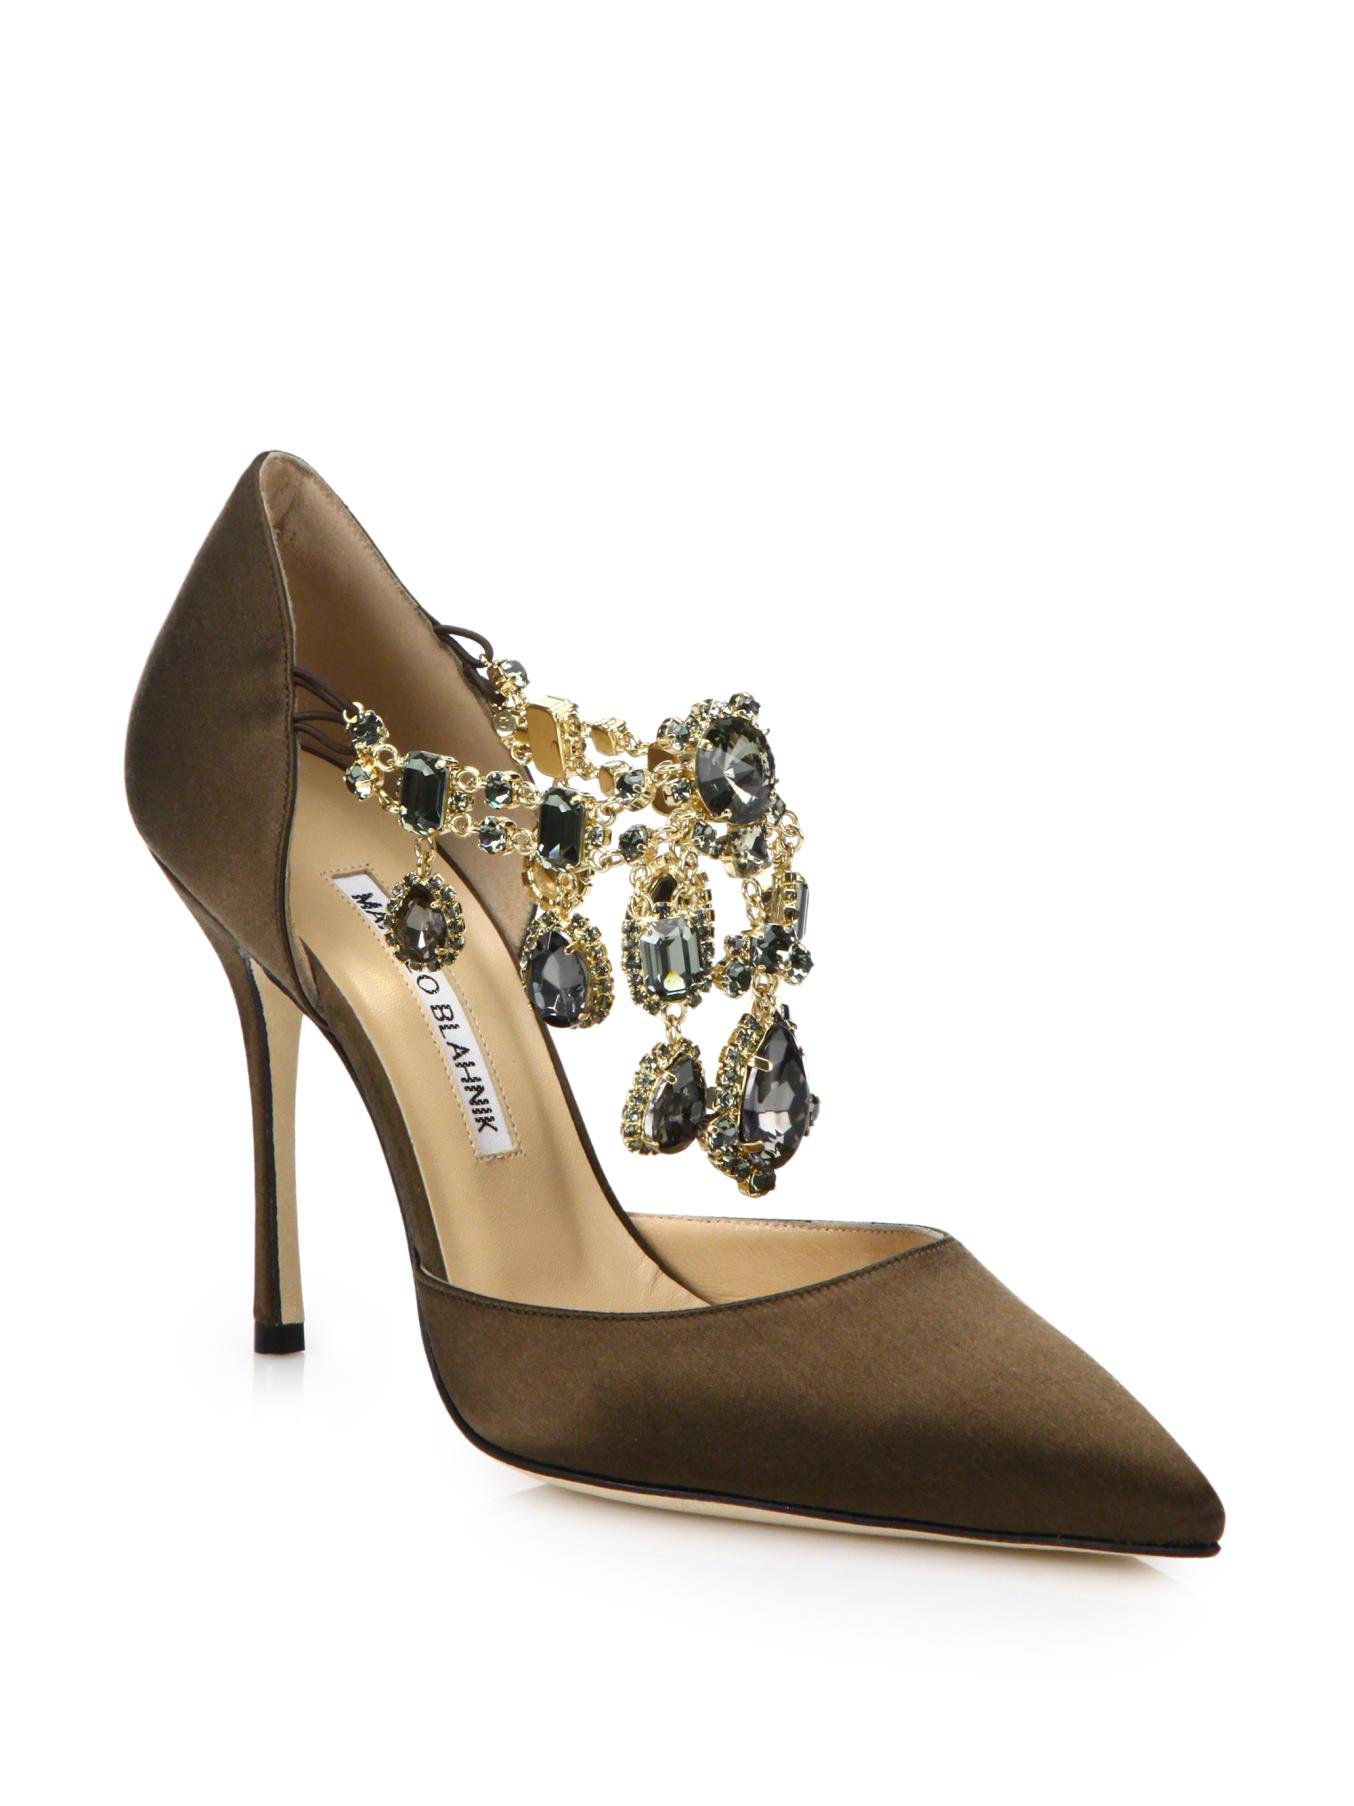 Manolo blahnik zullin satin jeweled d 39 orsay pumps in for Who is manolo blahnik